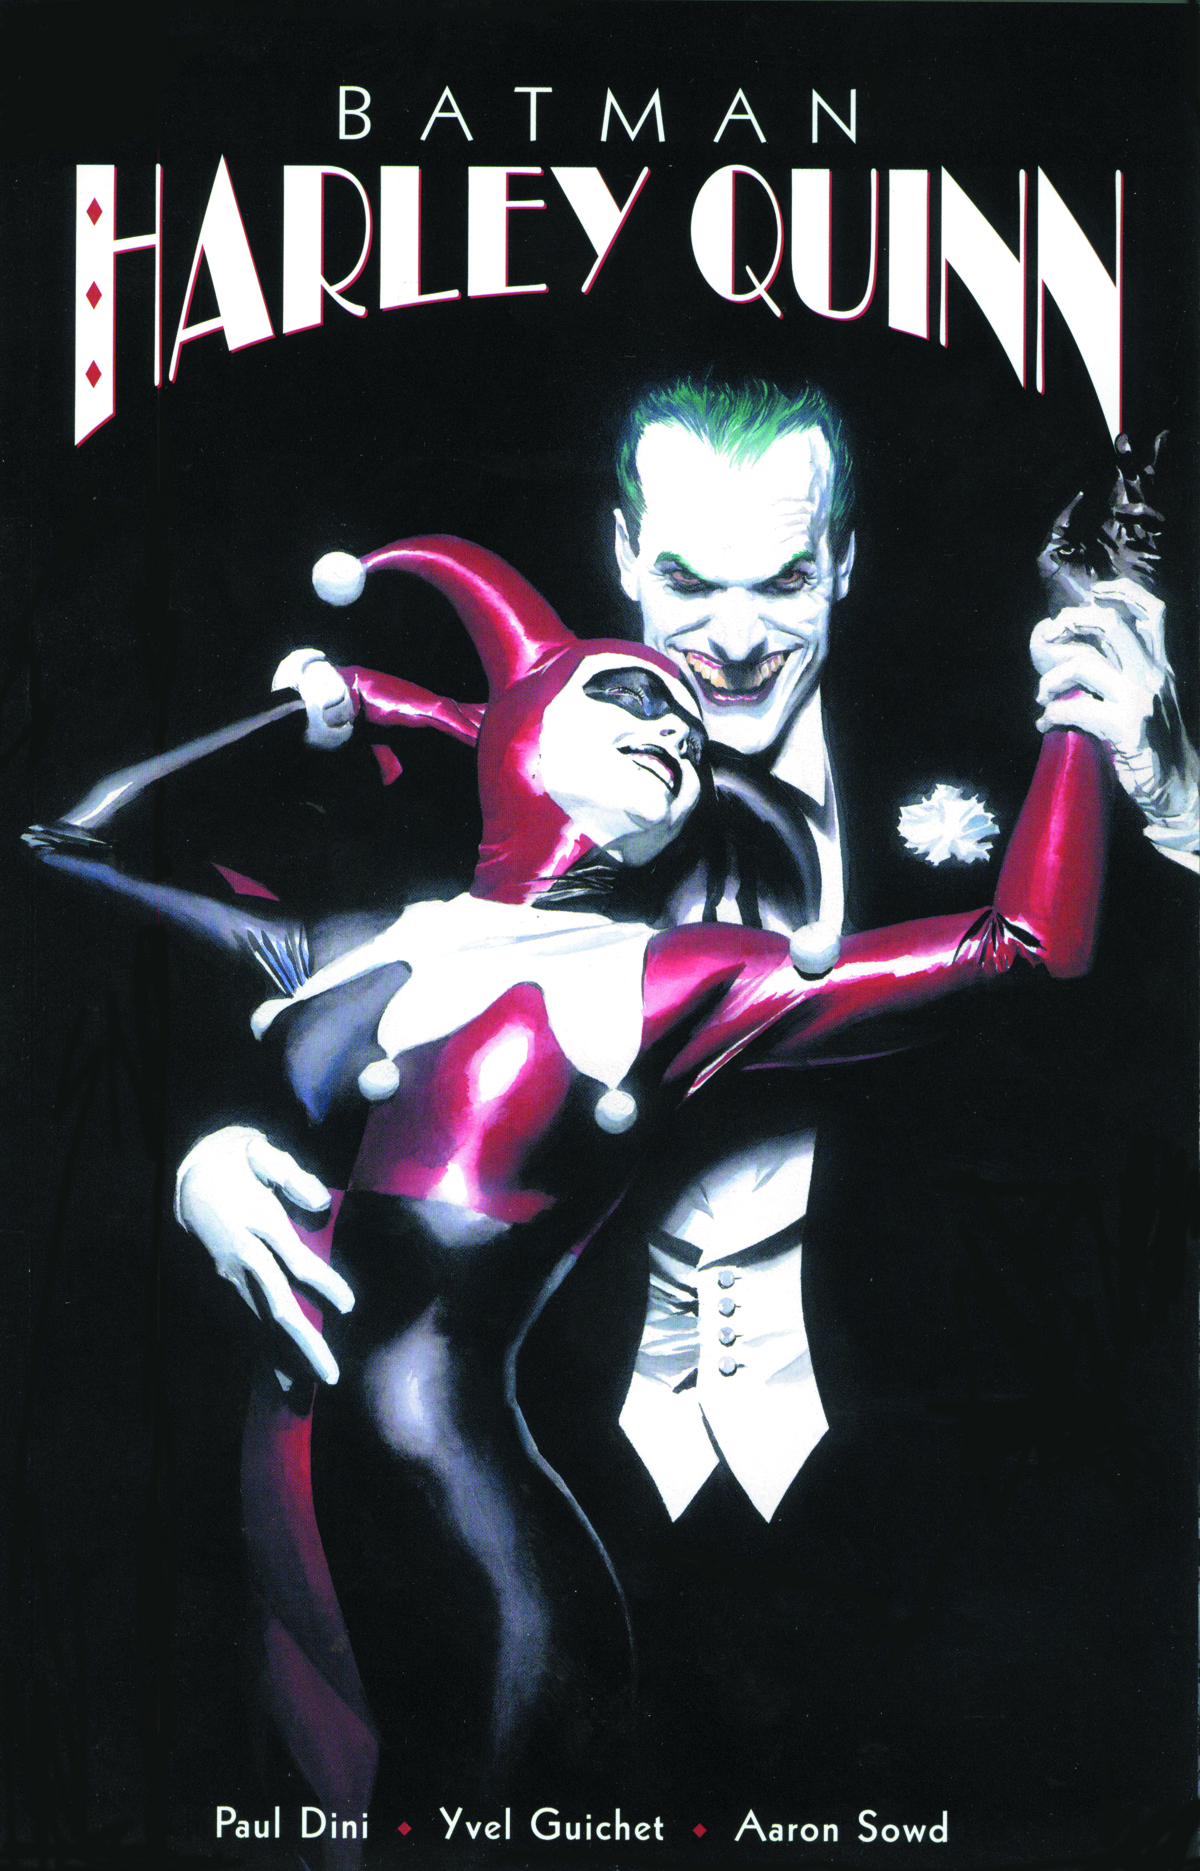 DC COMICS PRESENTS HARLEY QUINN #1